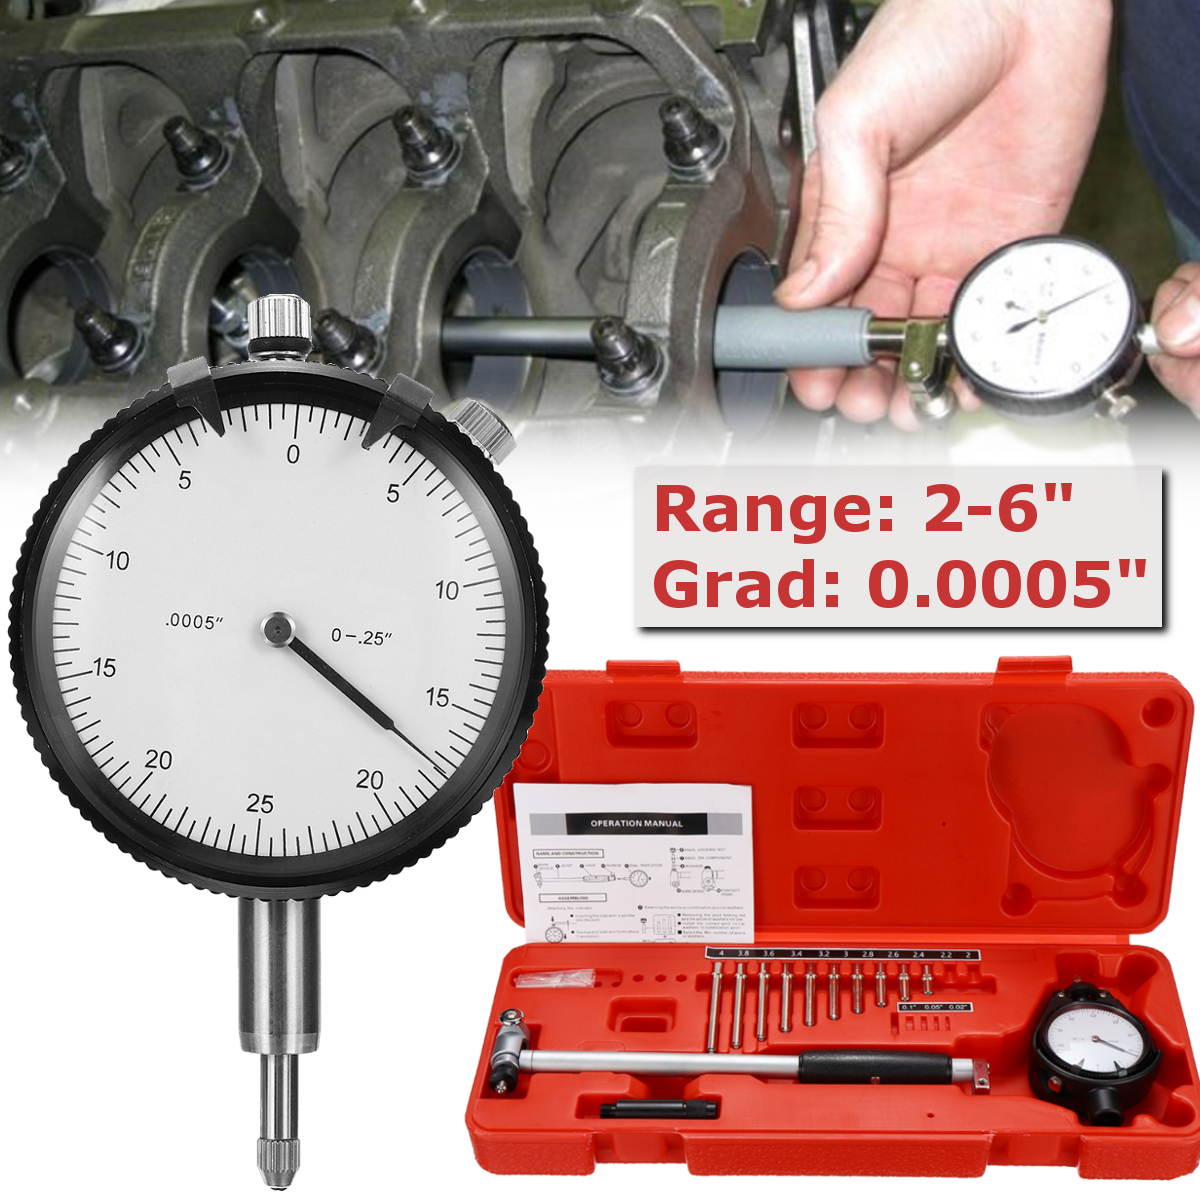 цена на 10 Anvils Dial Bore Gauge Measuring Indicator 2-6 Grad 0.0005 Steel+ABS Resolution Engine CylinderChangeable/Movable Probe